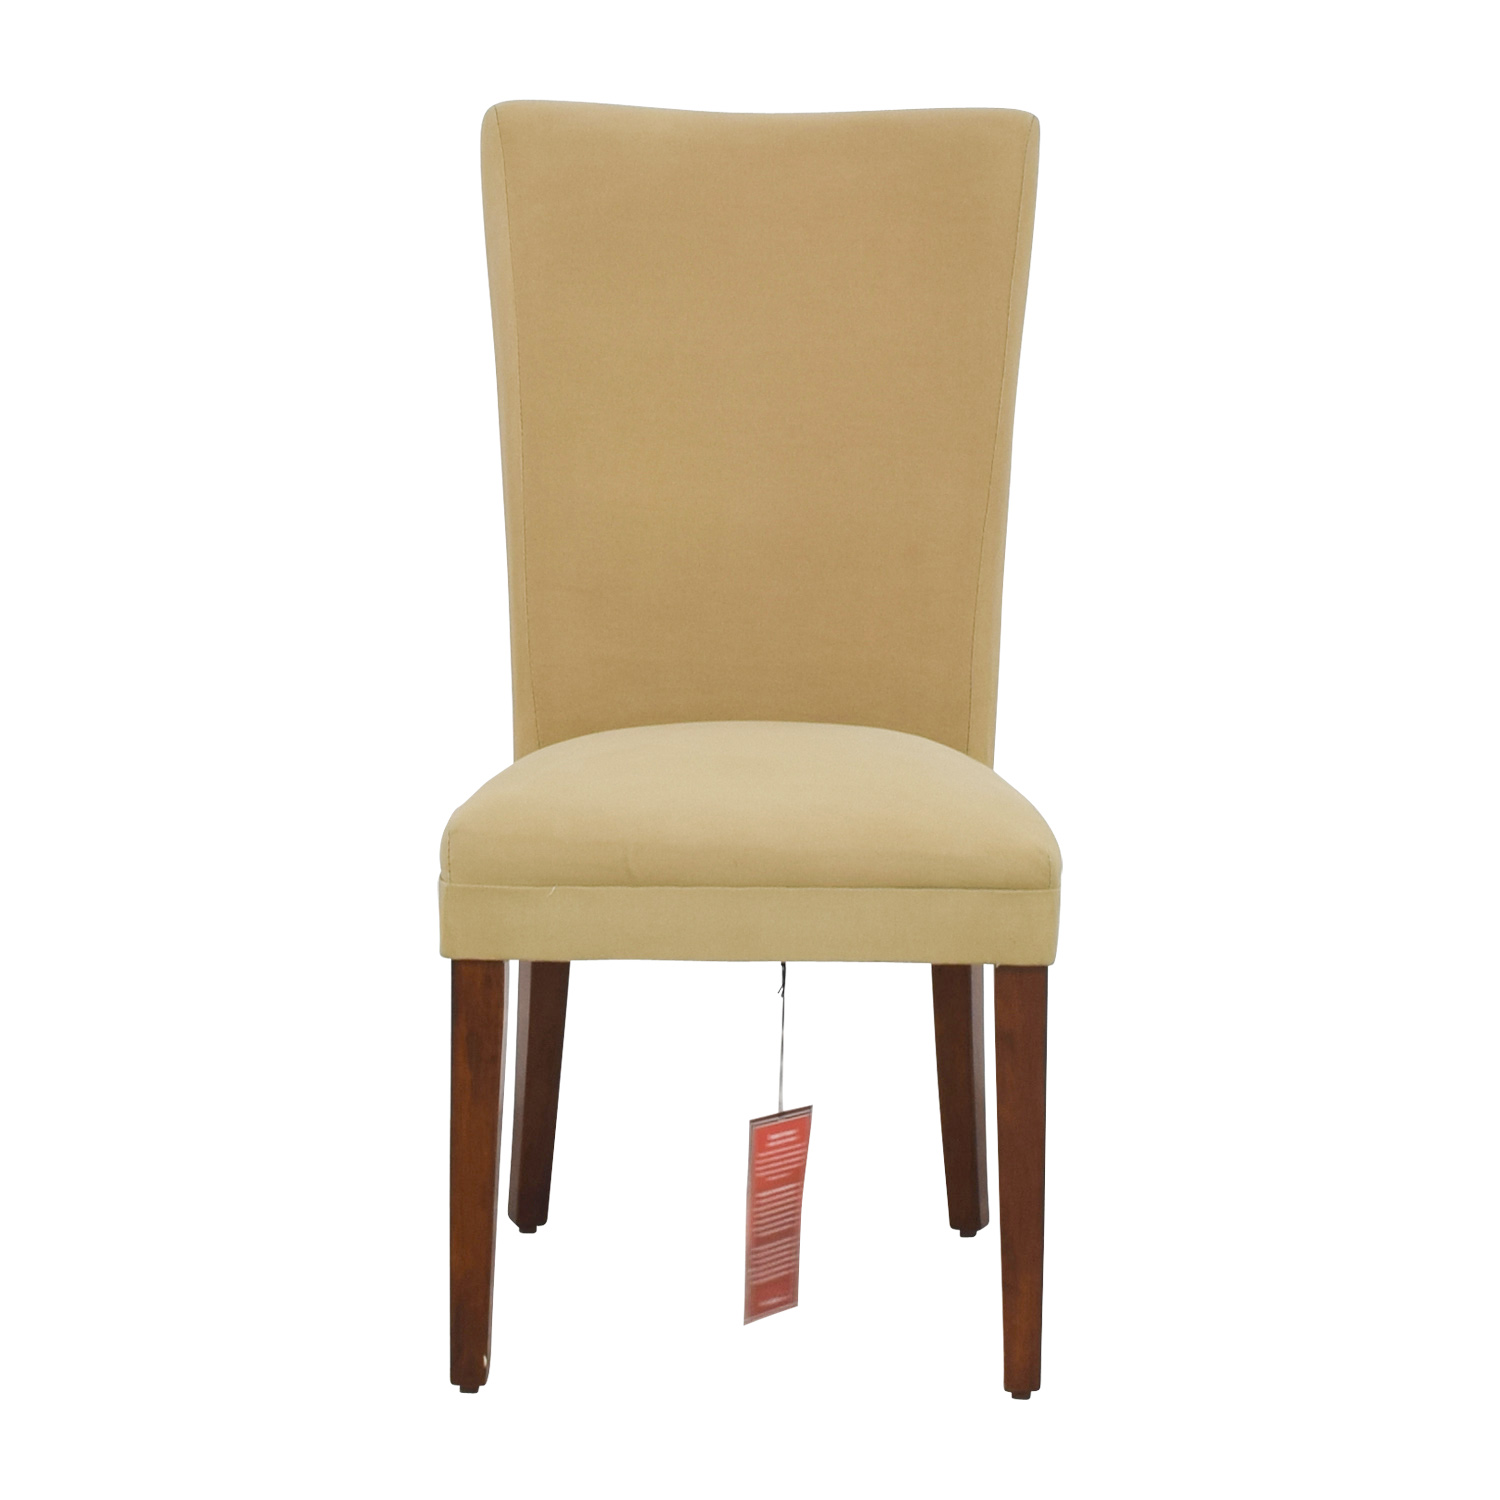 shop Coaster High Back Tan Upholstered Chair Coaster Chairs